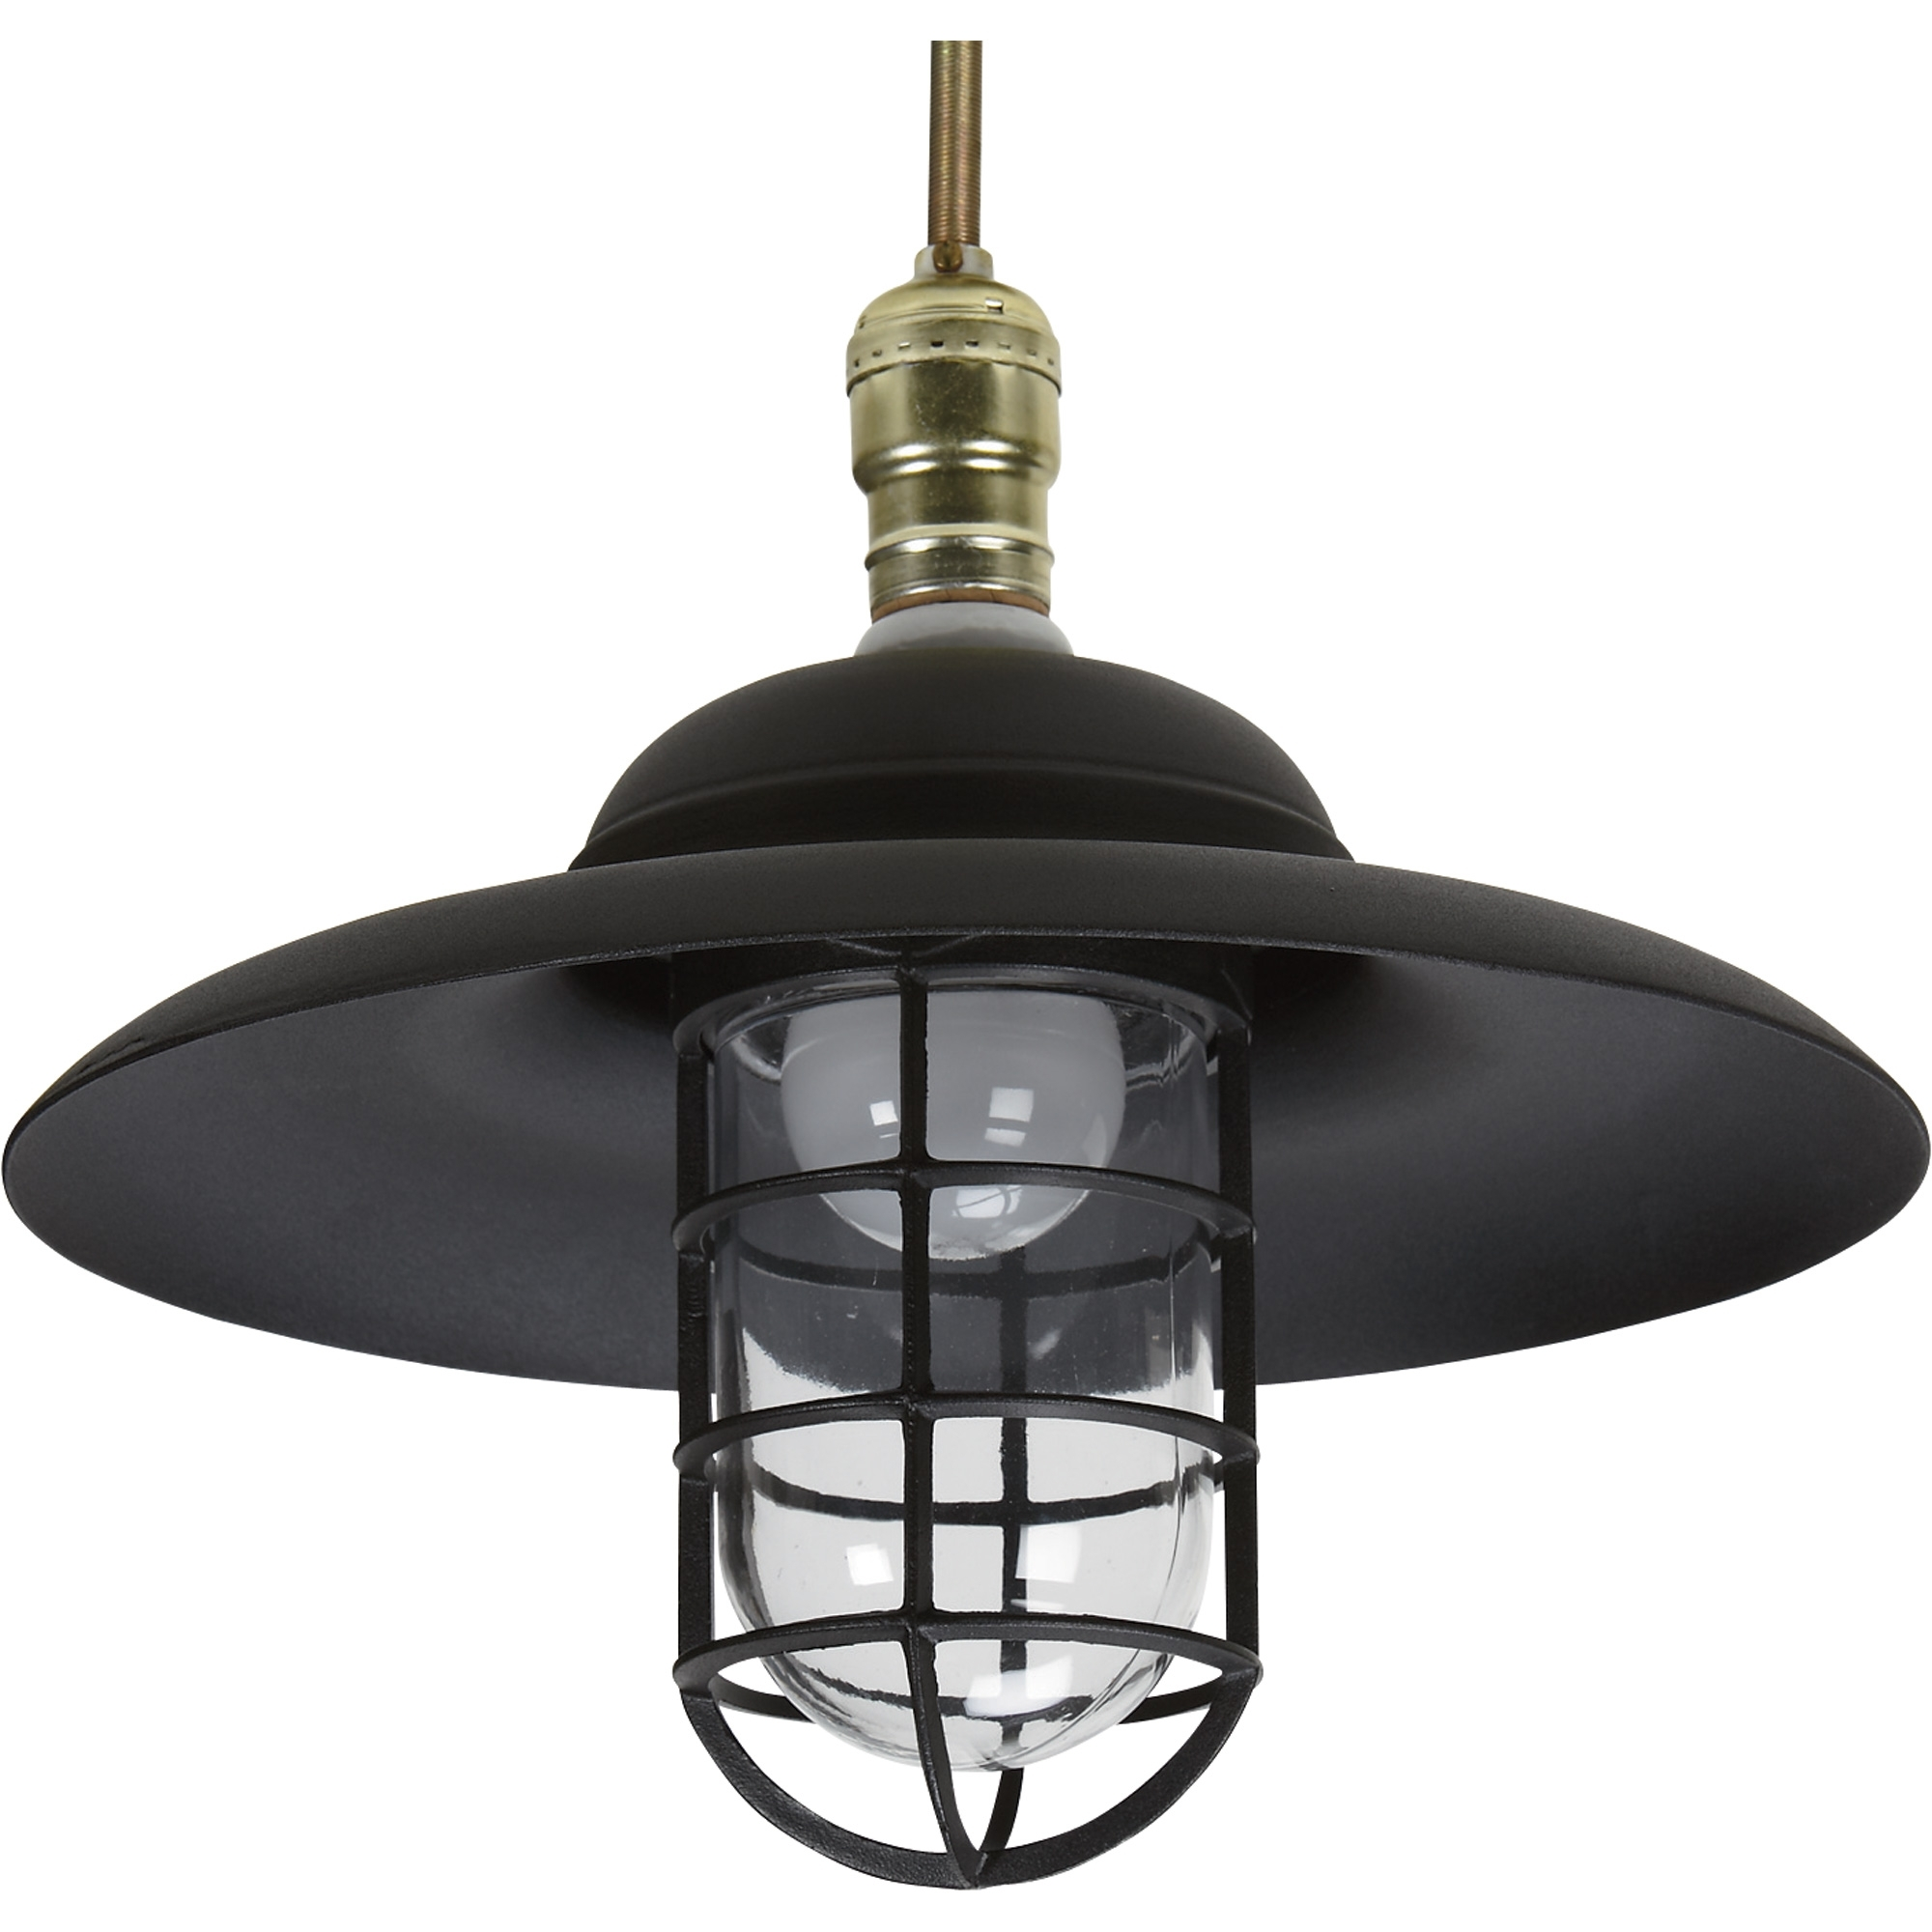 Outdoor Light : Extraordinary Outdoor Barn Lights For Sale , Pottery Intended For Outdoor Hanging Barn Lights (View 3 of 15)